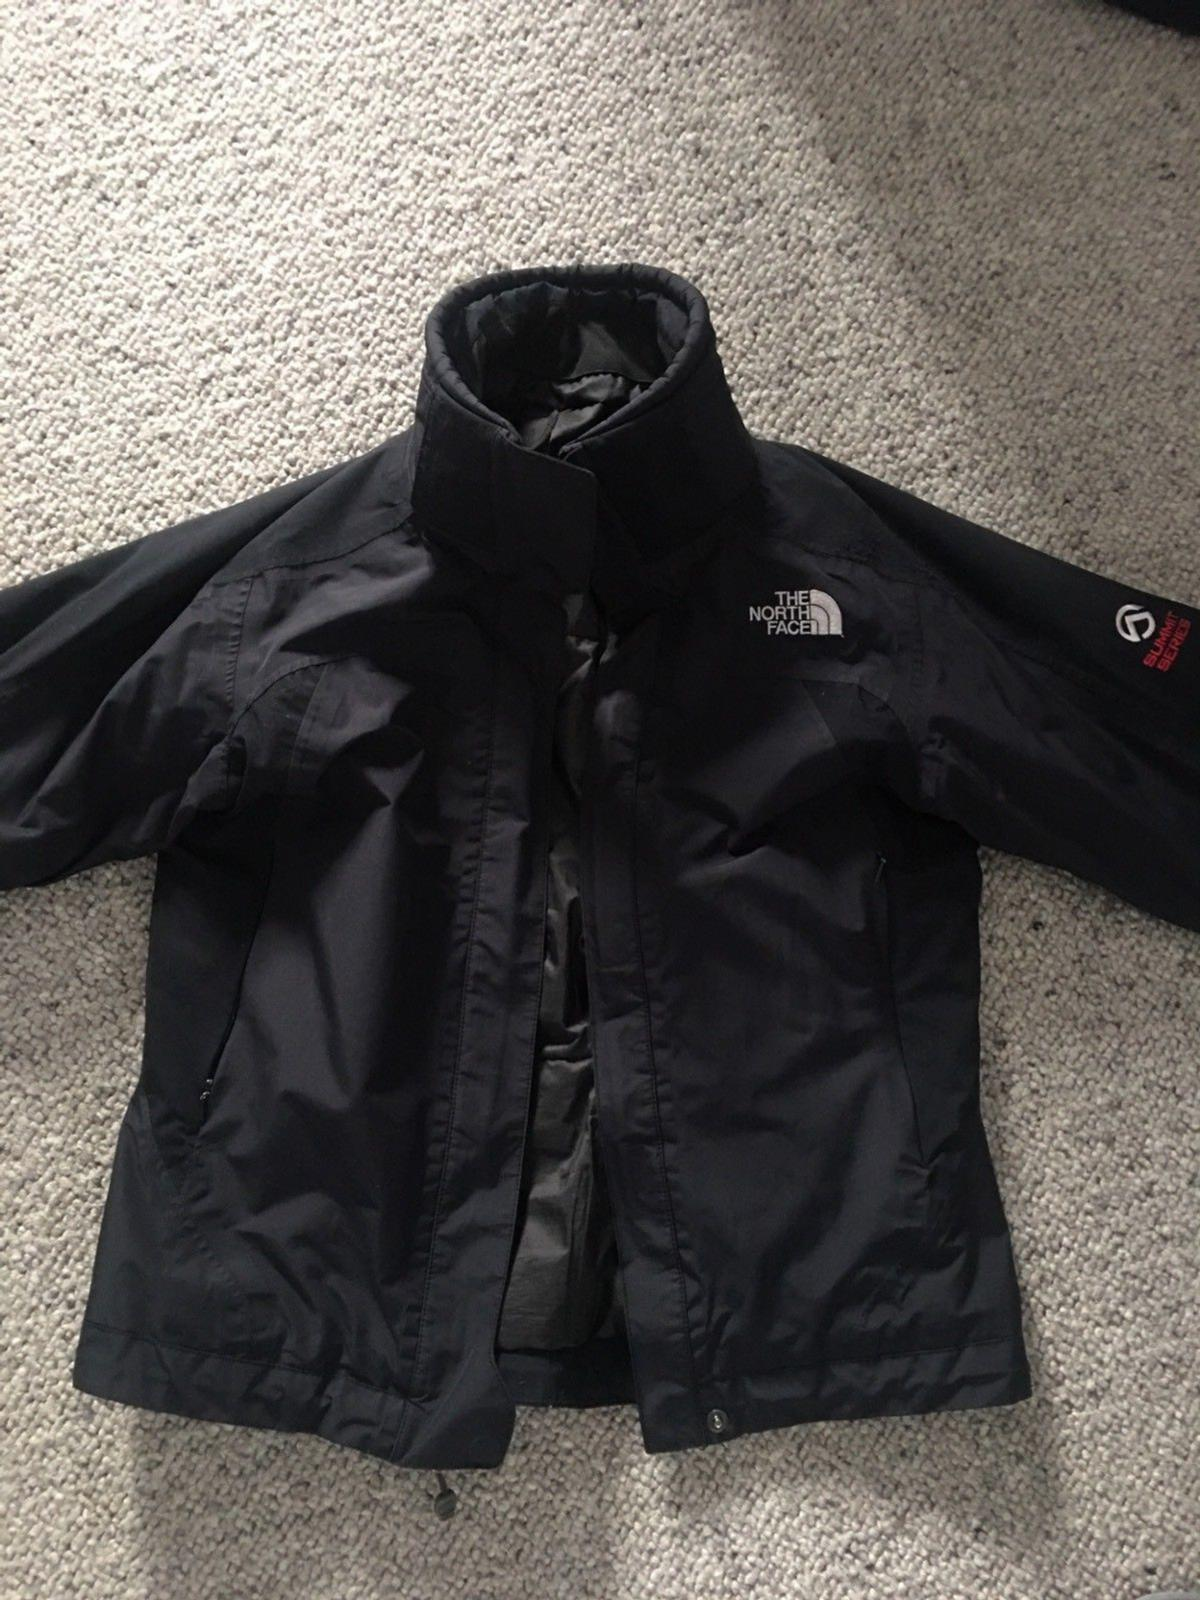 Women S North Face Hyvent Jacket Size Xs In Eh1 Edinburgh For 30 00 For Sale Shpock